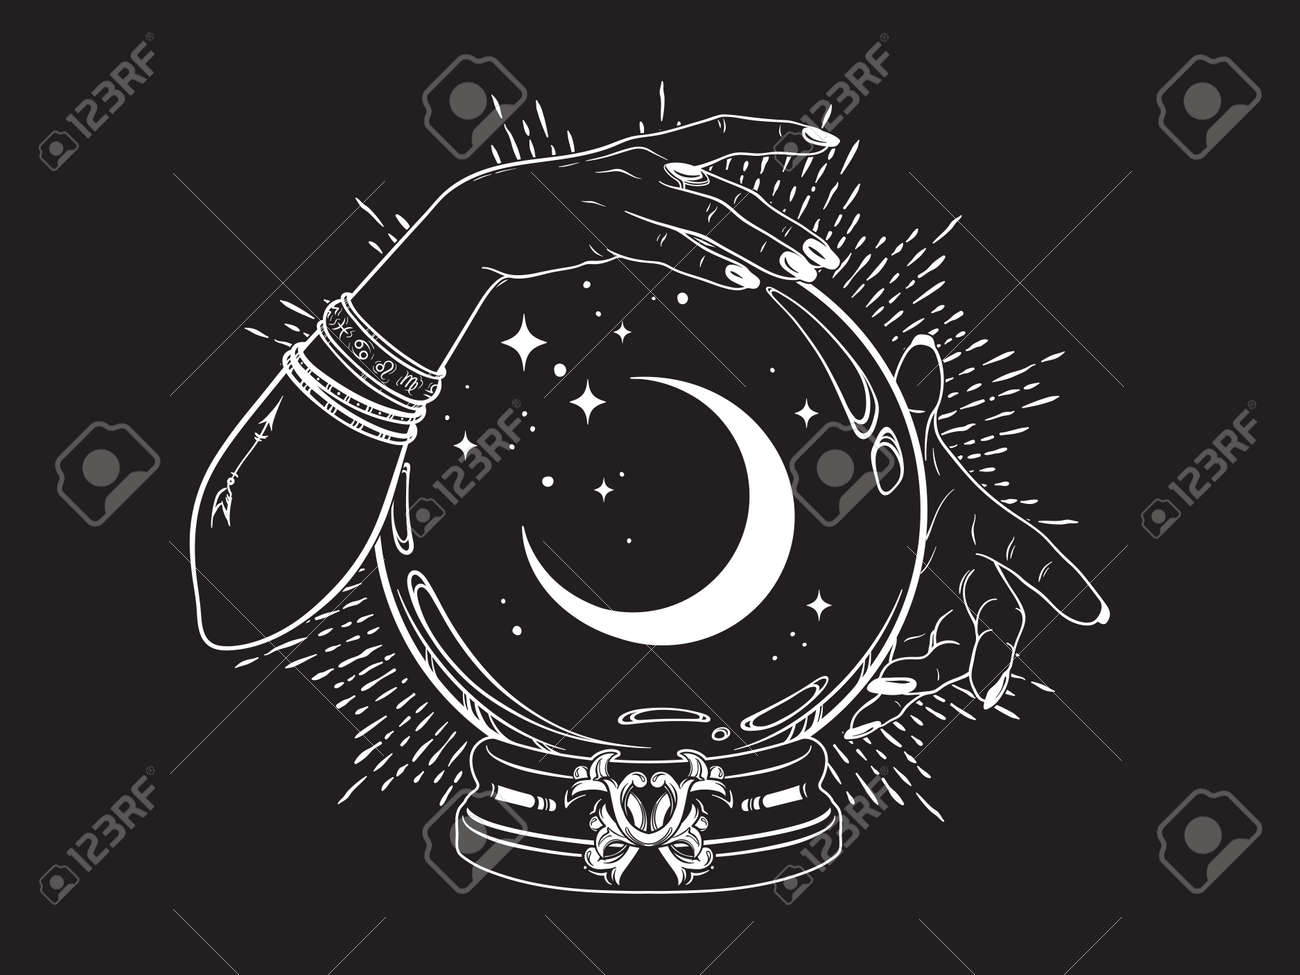 Magic crystal ball with crescent moon and stars in hands of fortune teller line art and dot work. Boho chic tattoo, poster or altar veil print design vector illustration. - 169999799